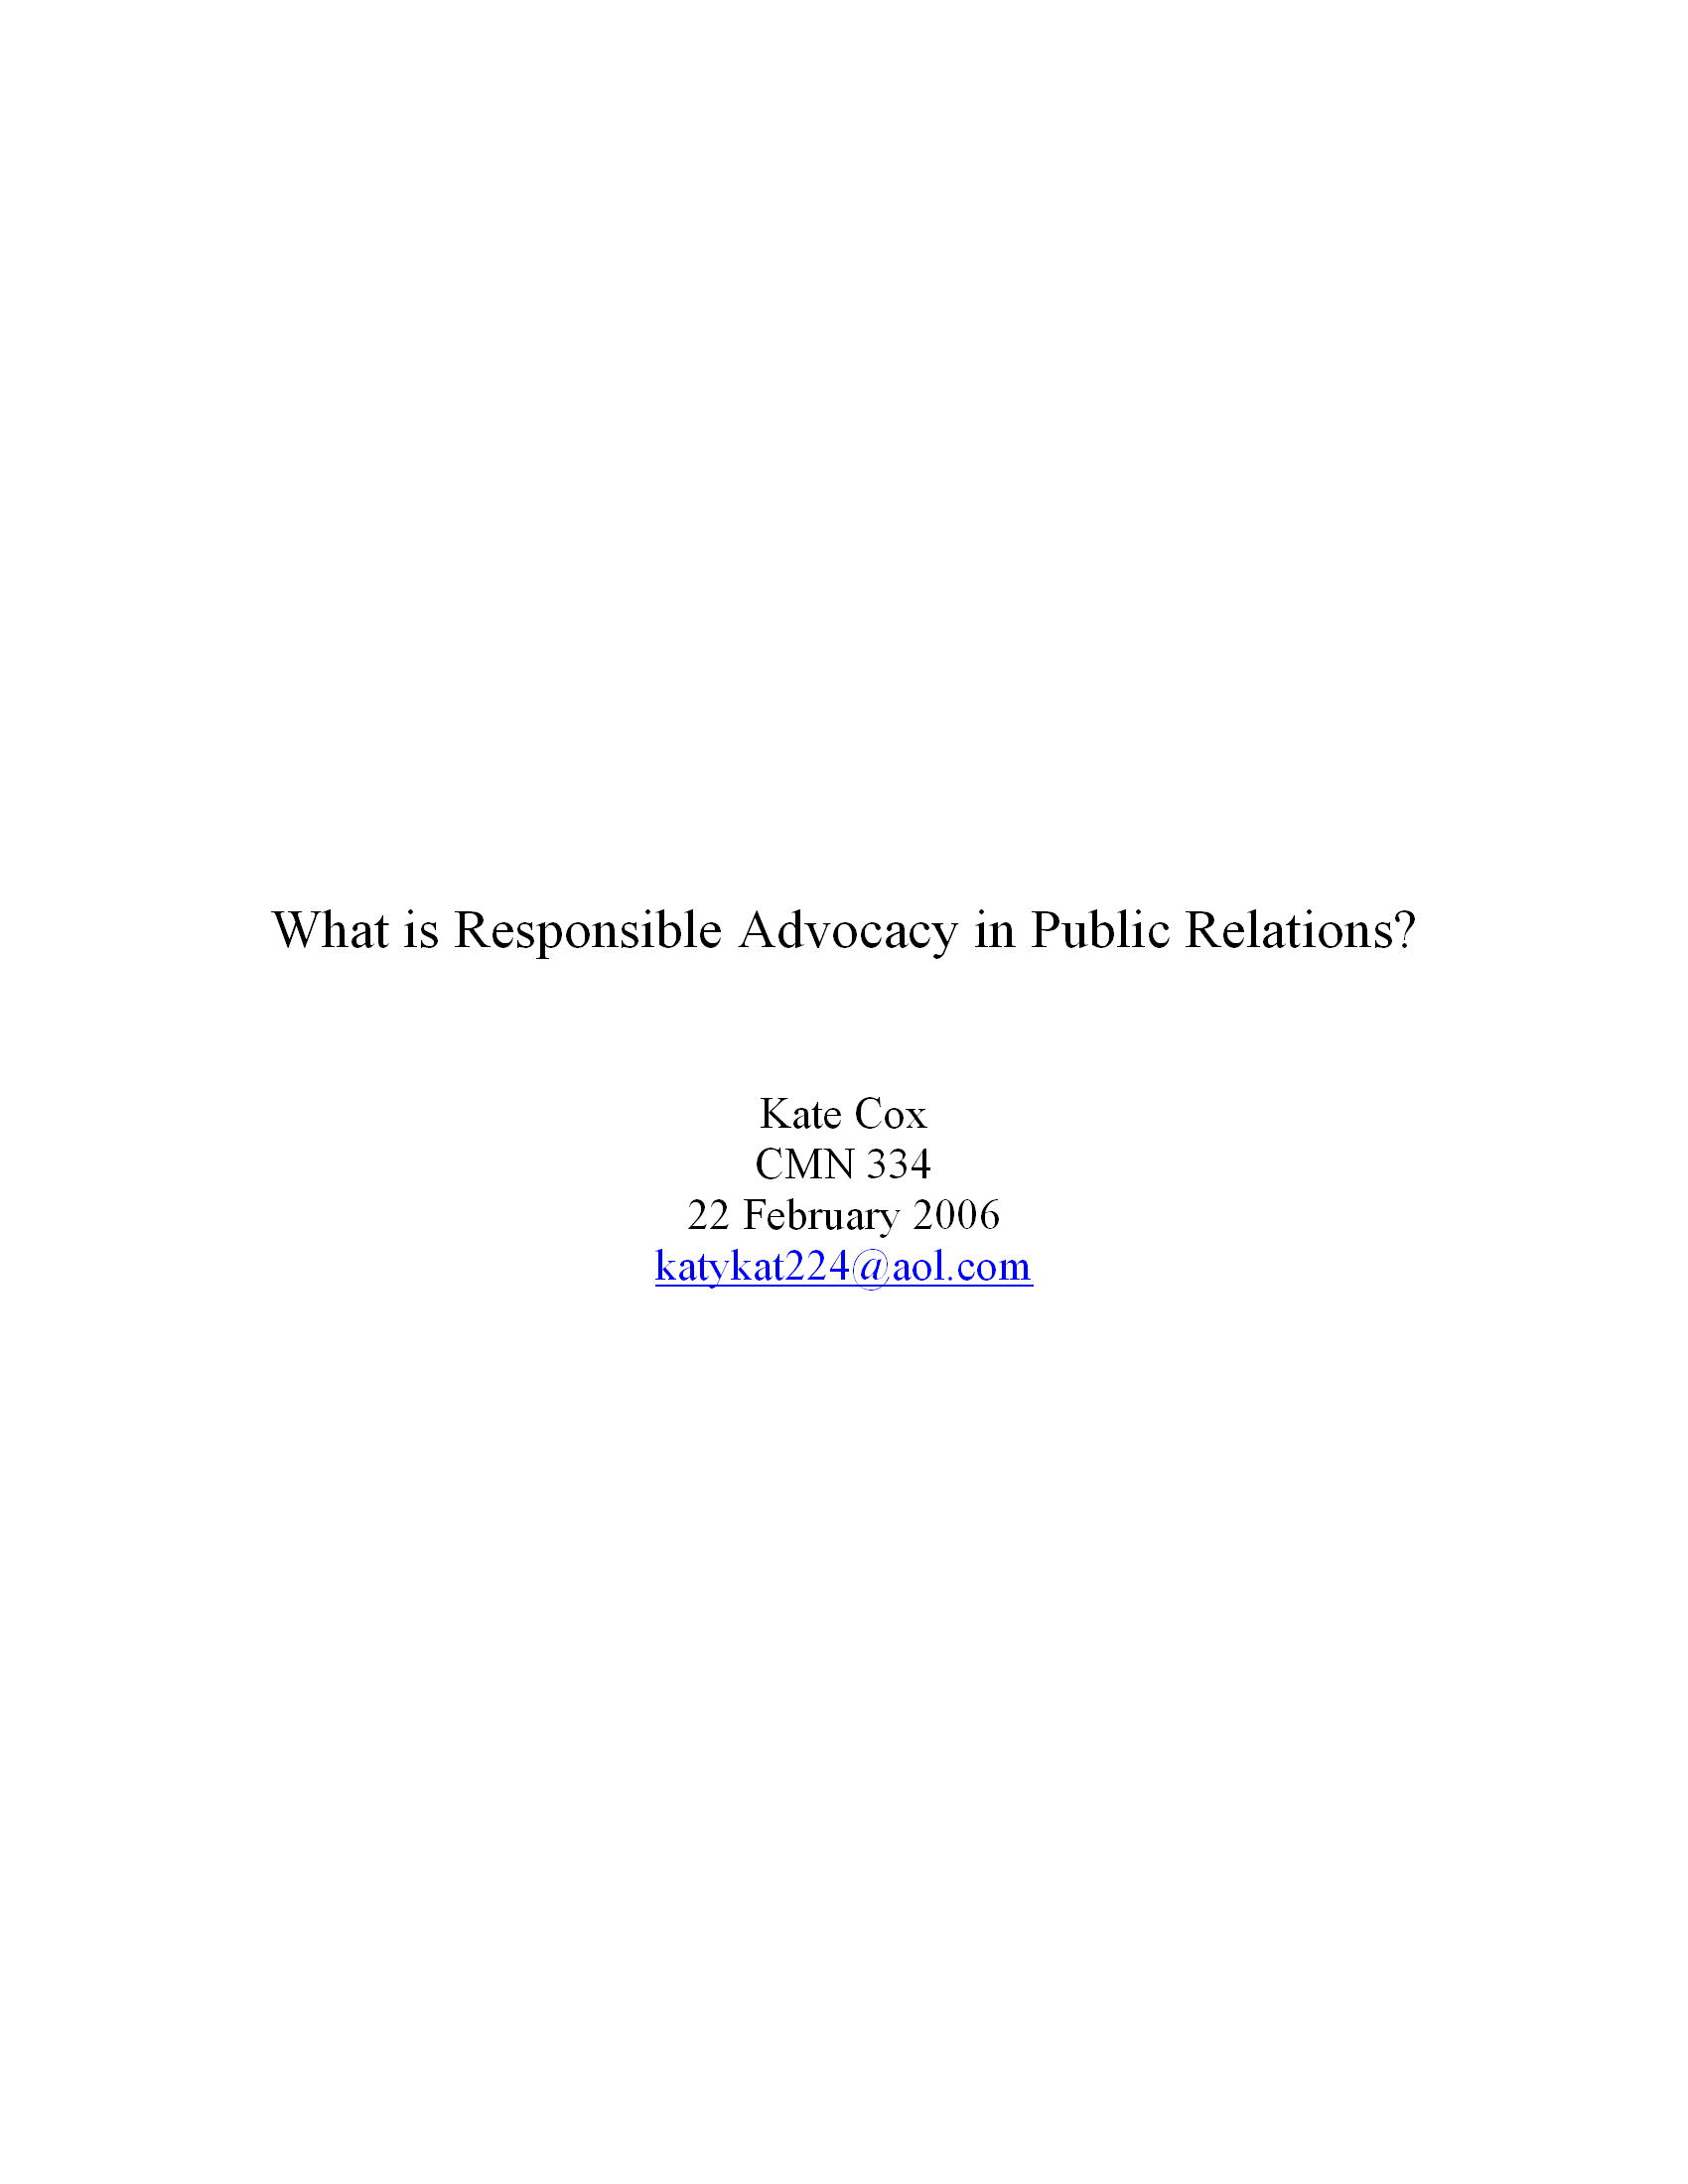 What is Responsible Advocacy in Public Relations? 6